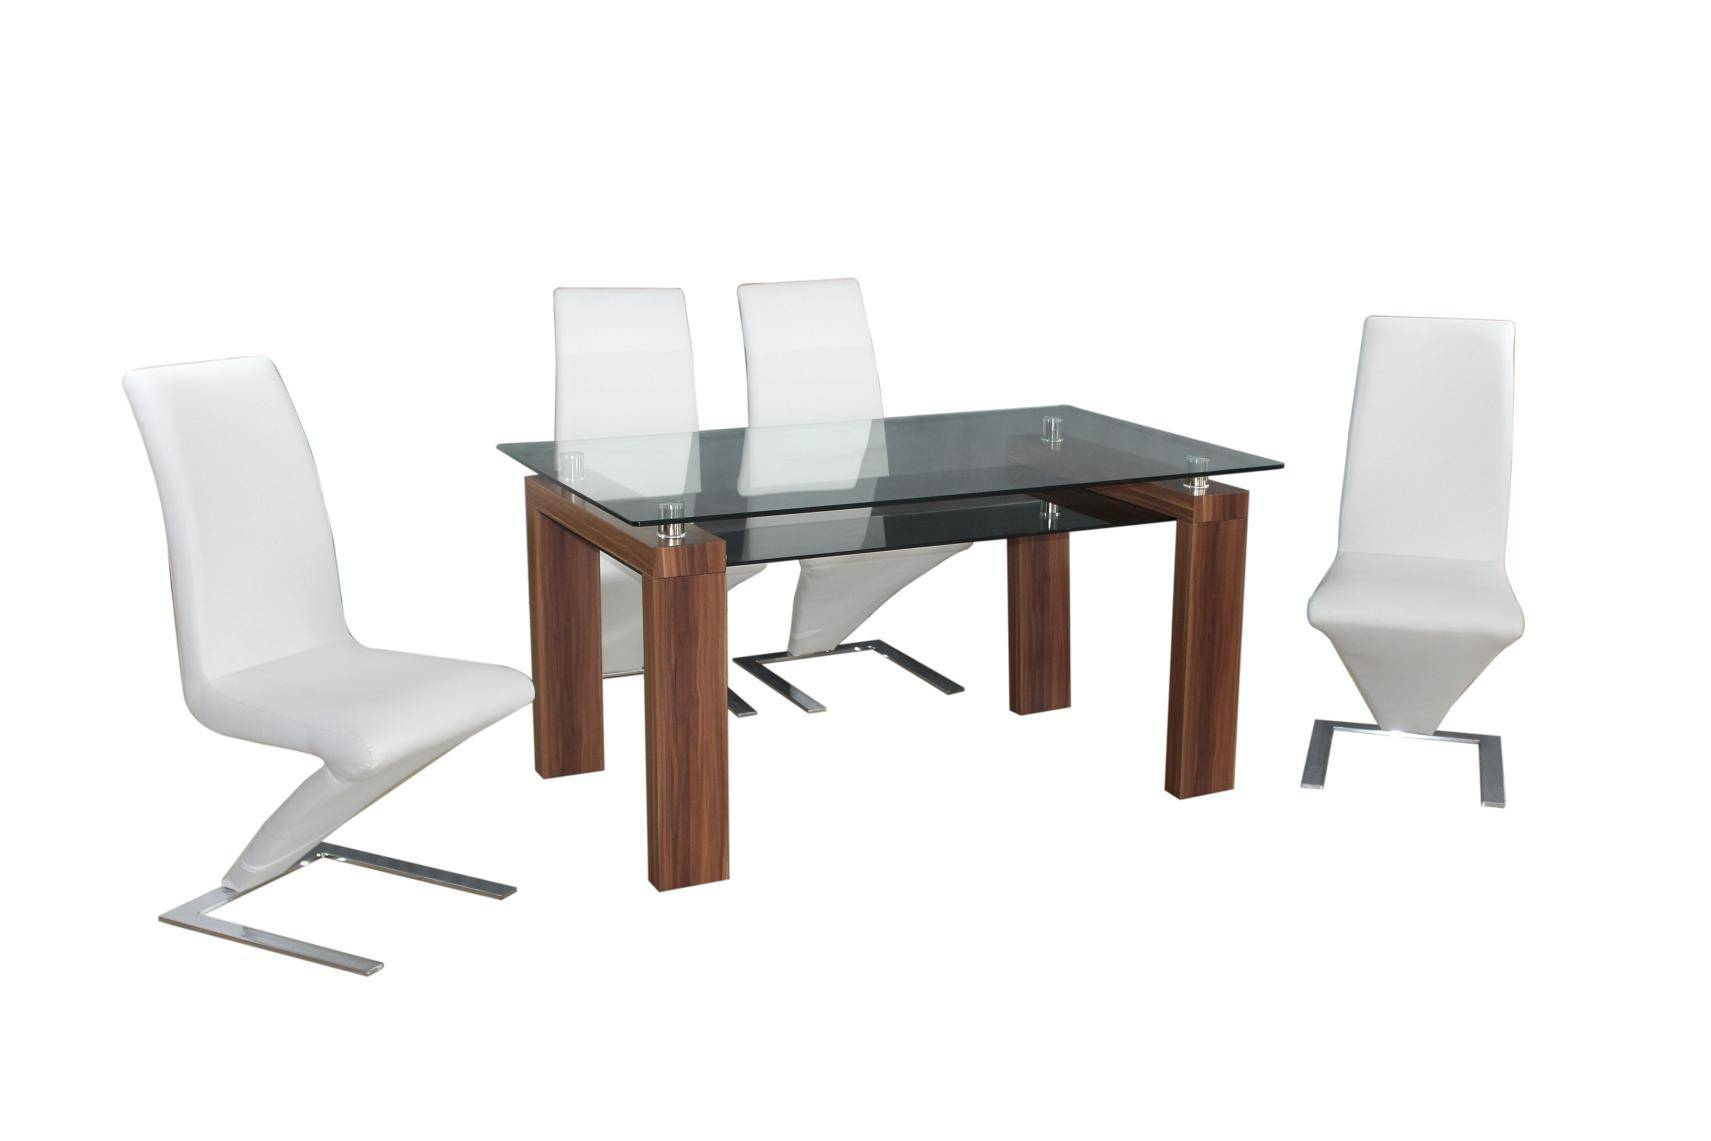 Modern 1+4 dining set, PU chair match wooden leg table